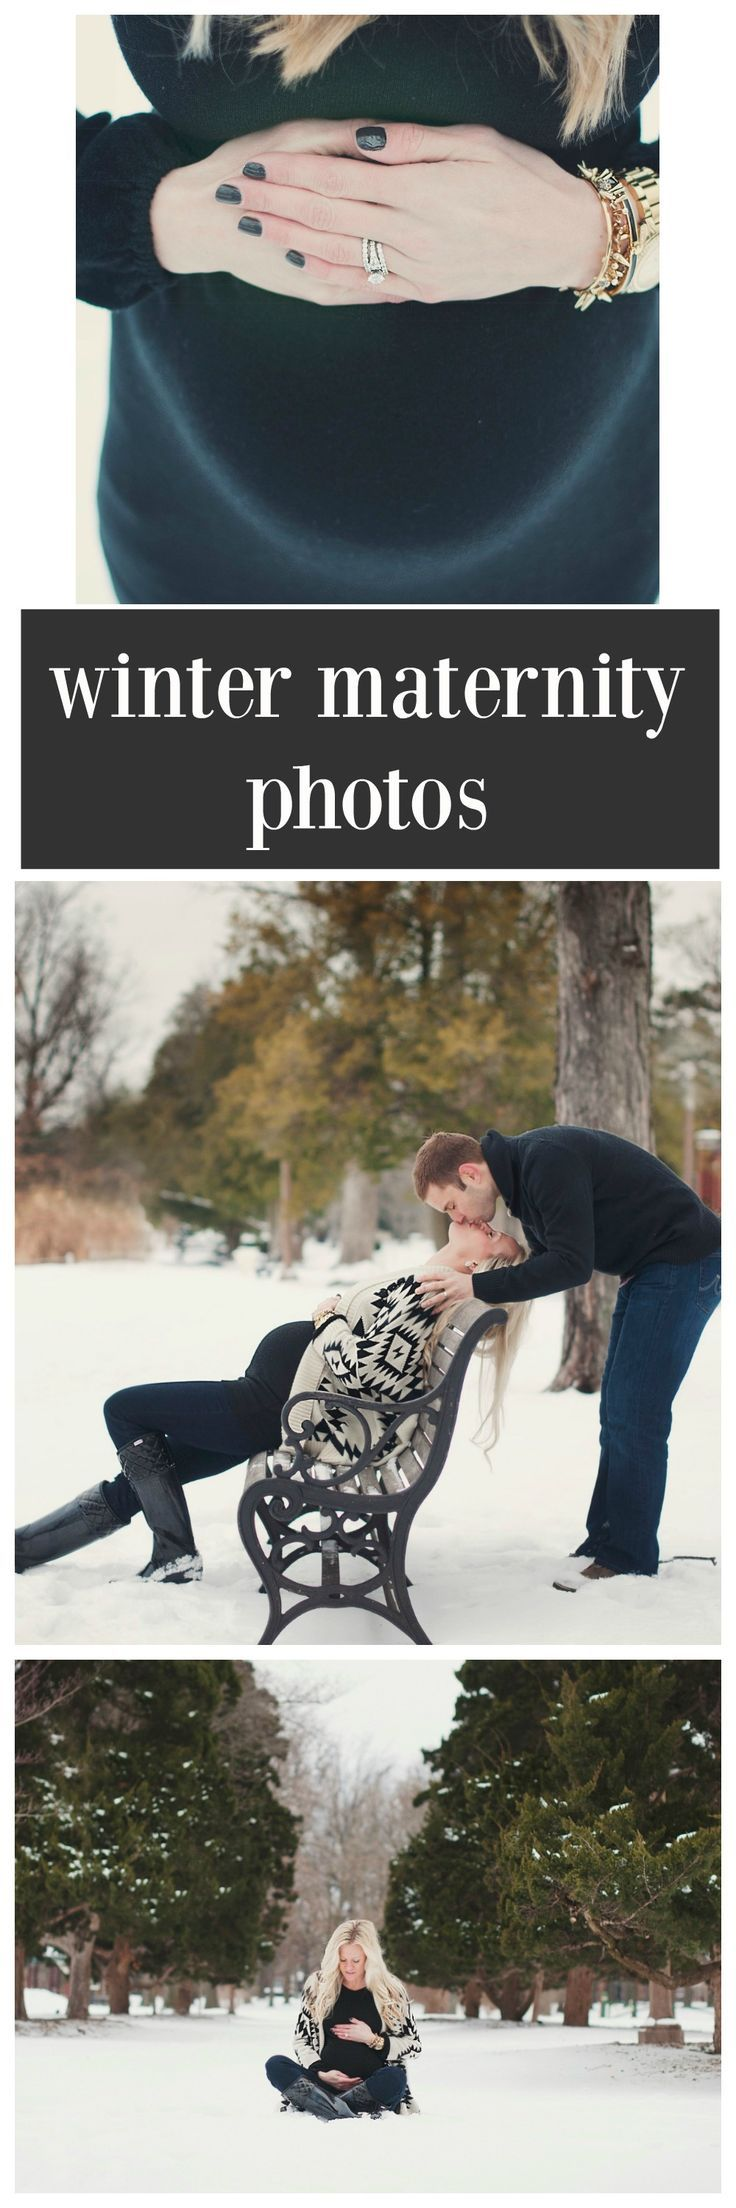 winter maternity session, maternity pictures, winter, baby bump, pregnancy, outdoor session, sneak peak.